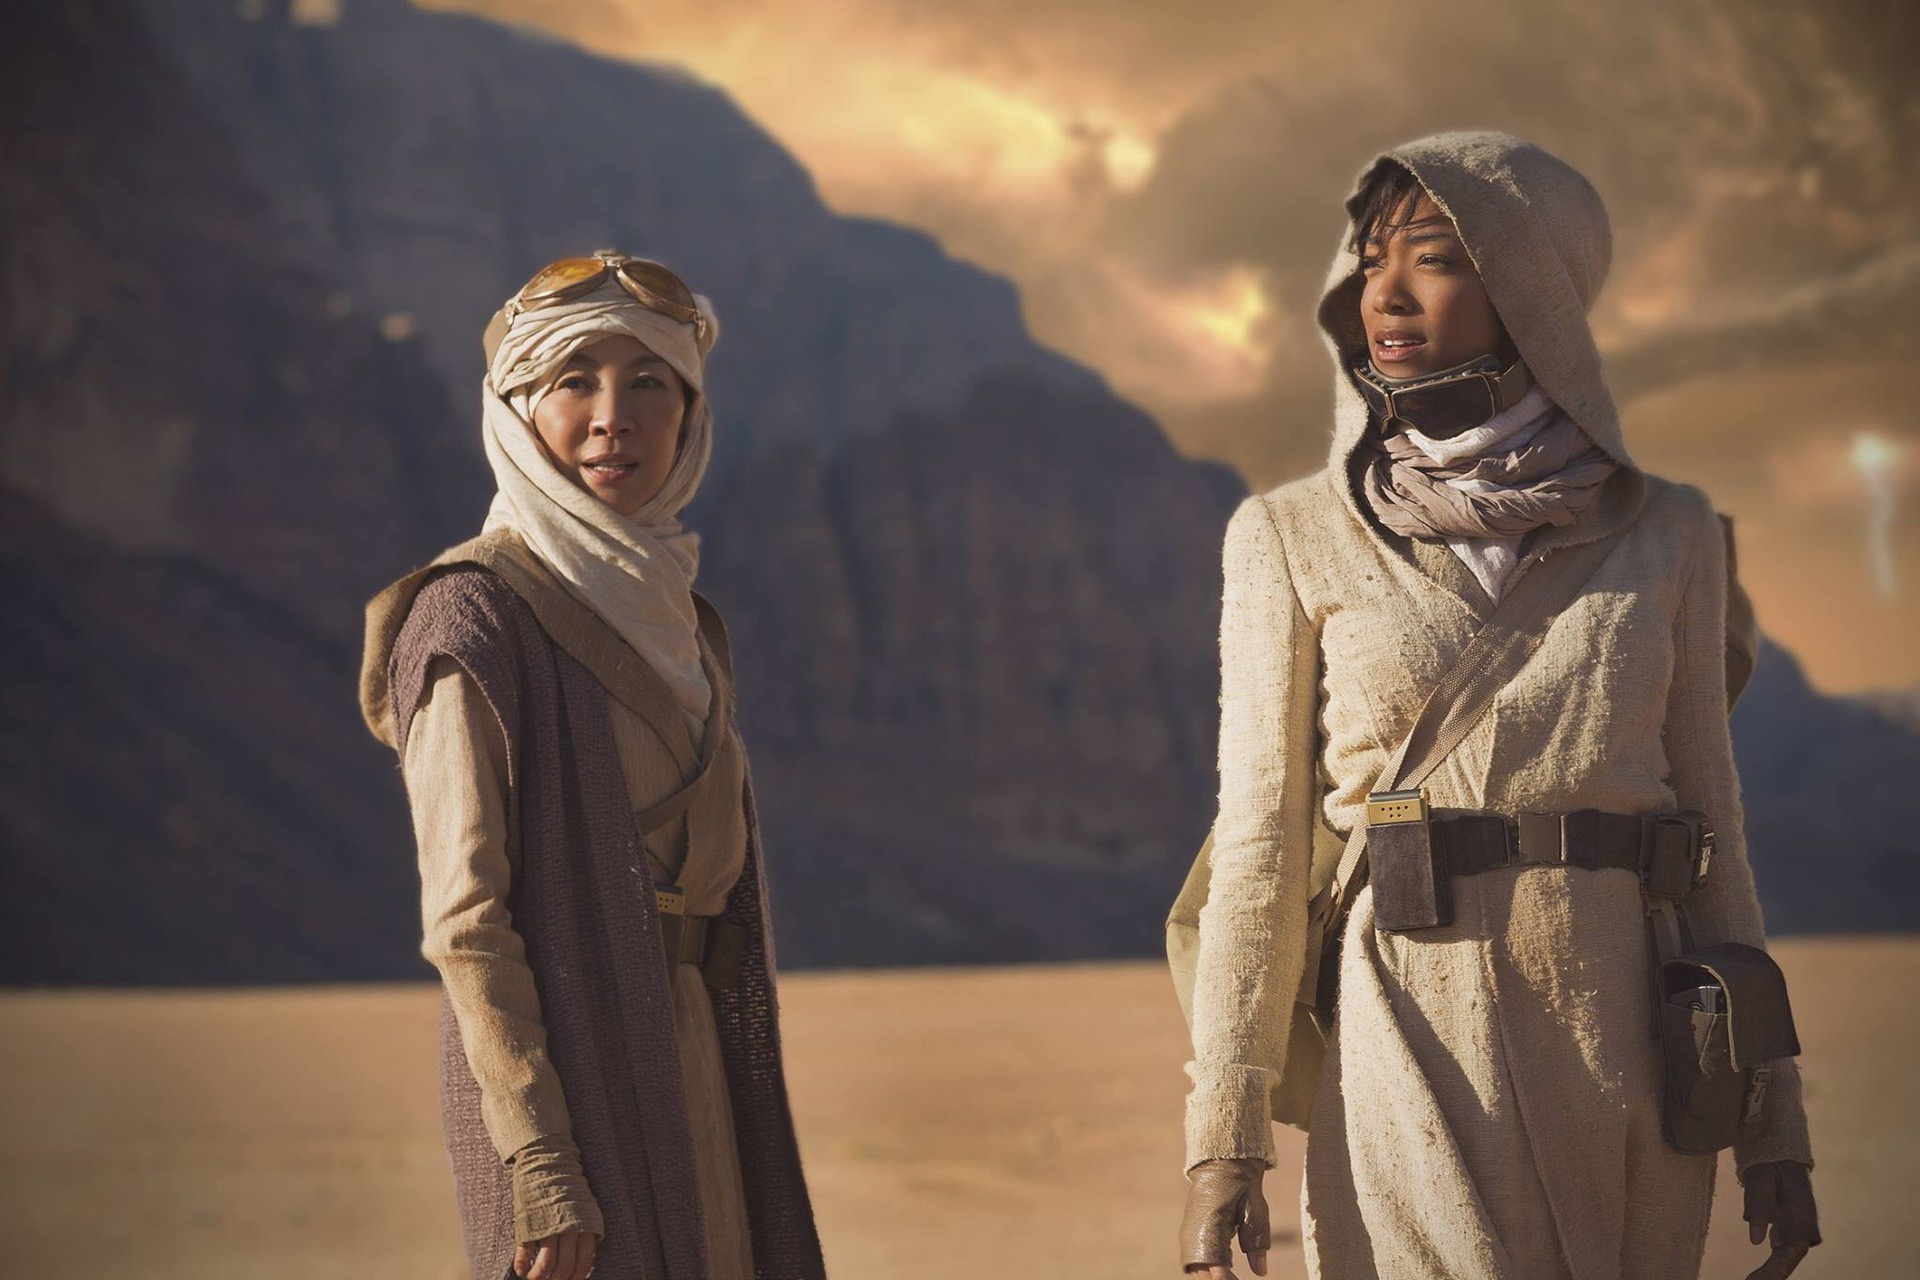 Star Trek: Discovery - Georgiou and Burnham